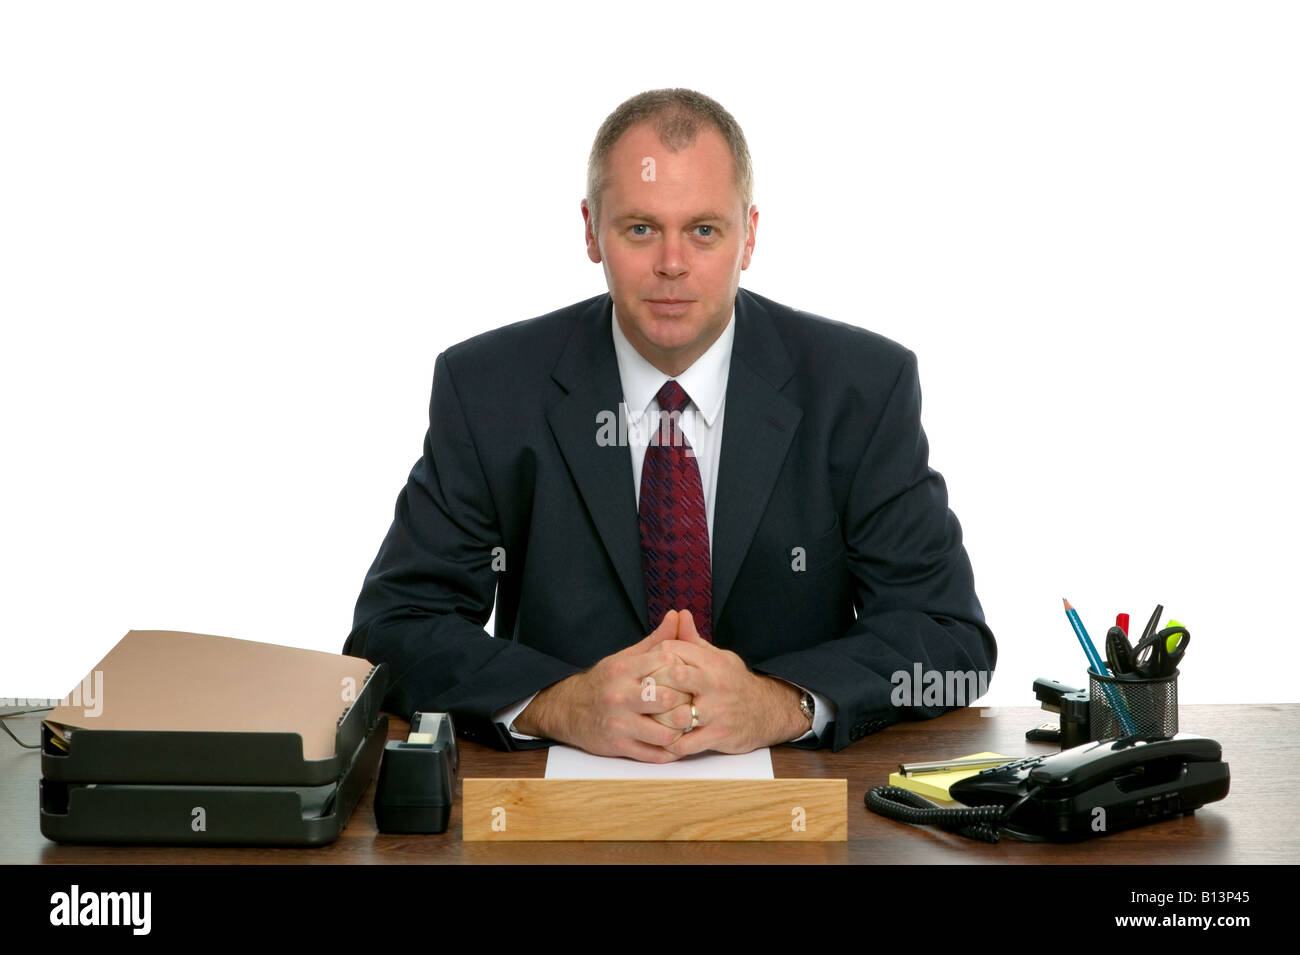 Portrait of a businessman sat at his desk against a white background - Stock Image